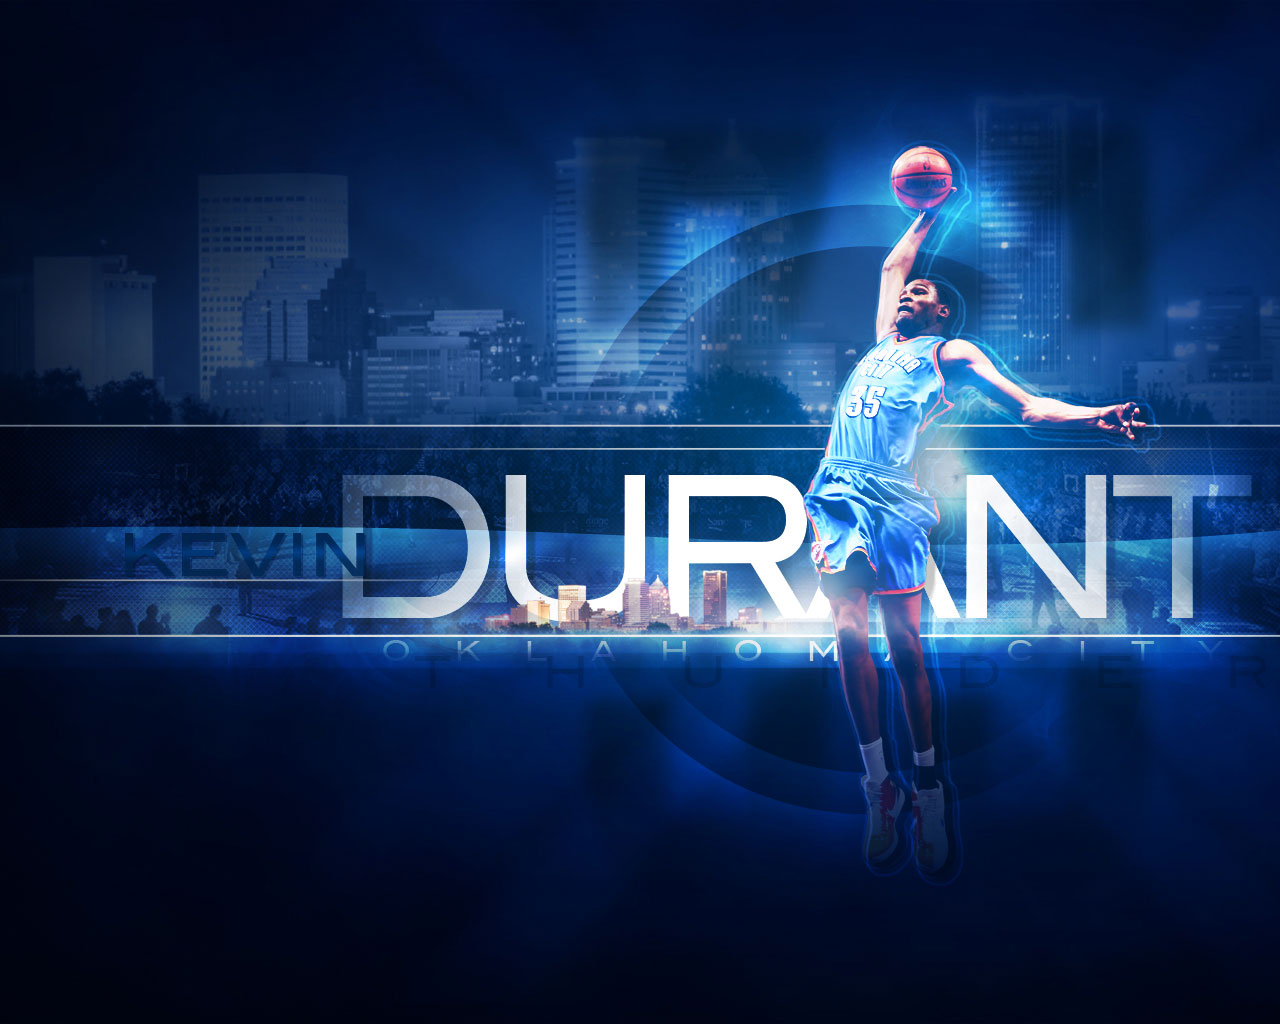 Kevin Durant Logo Wallpapers